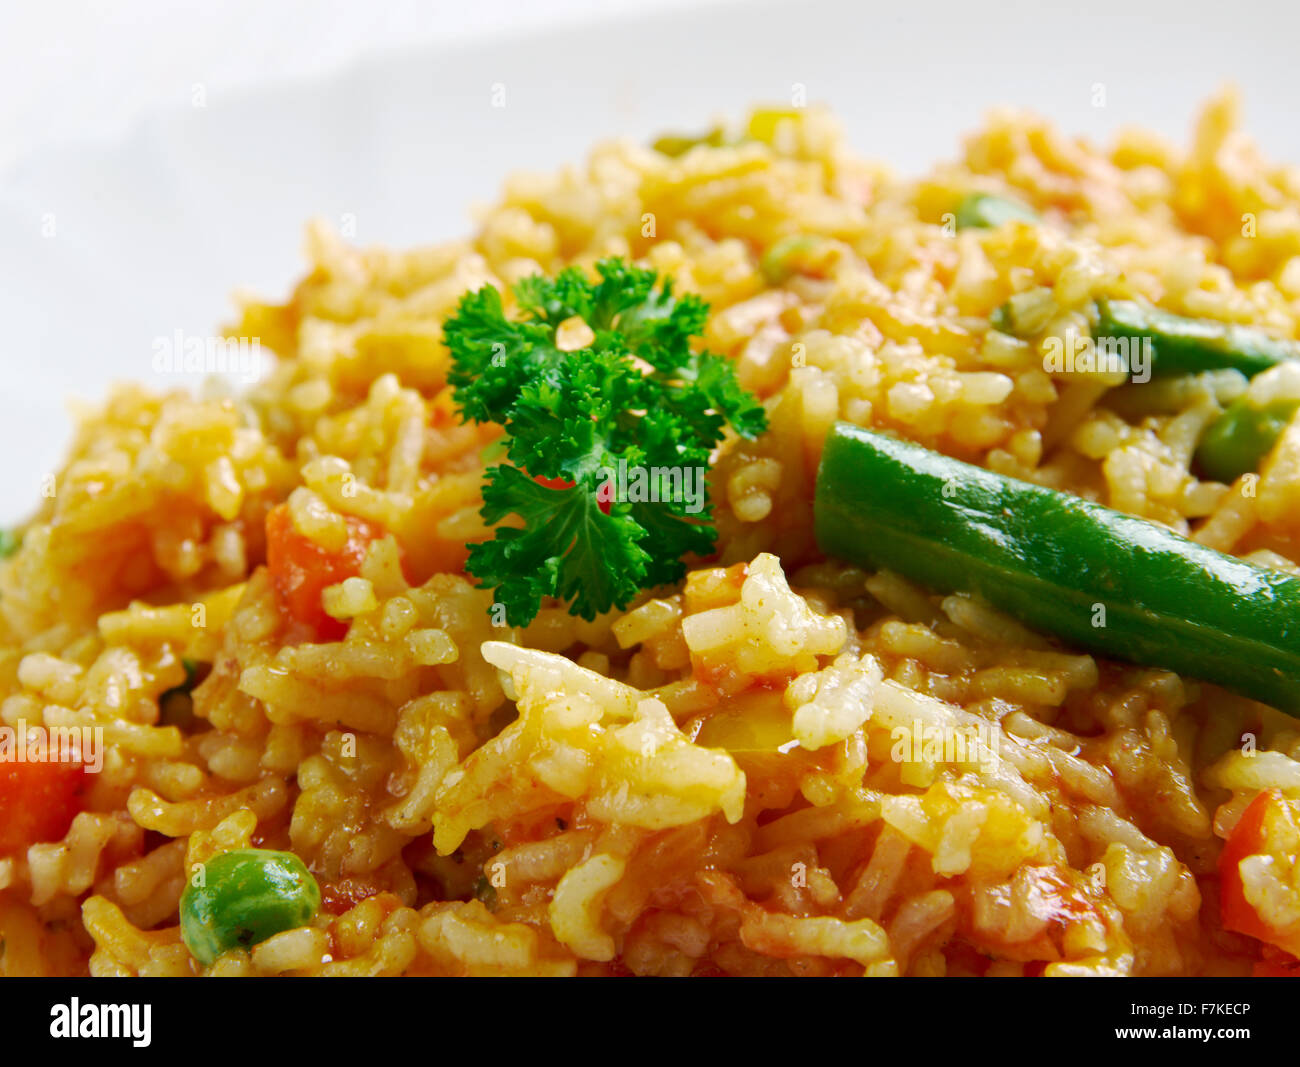 Shahi pulao .Moghlai version of delicately spiced rice - Stock Image